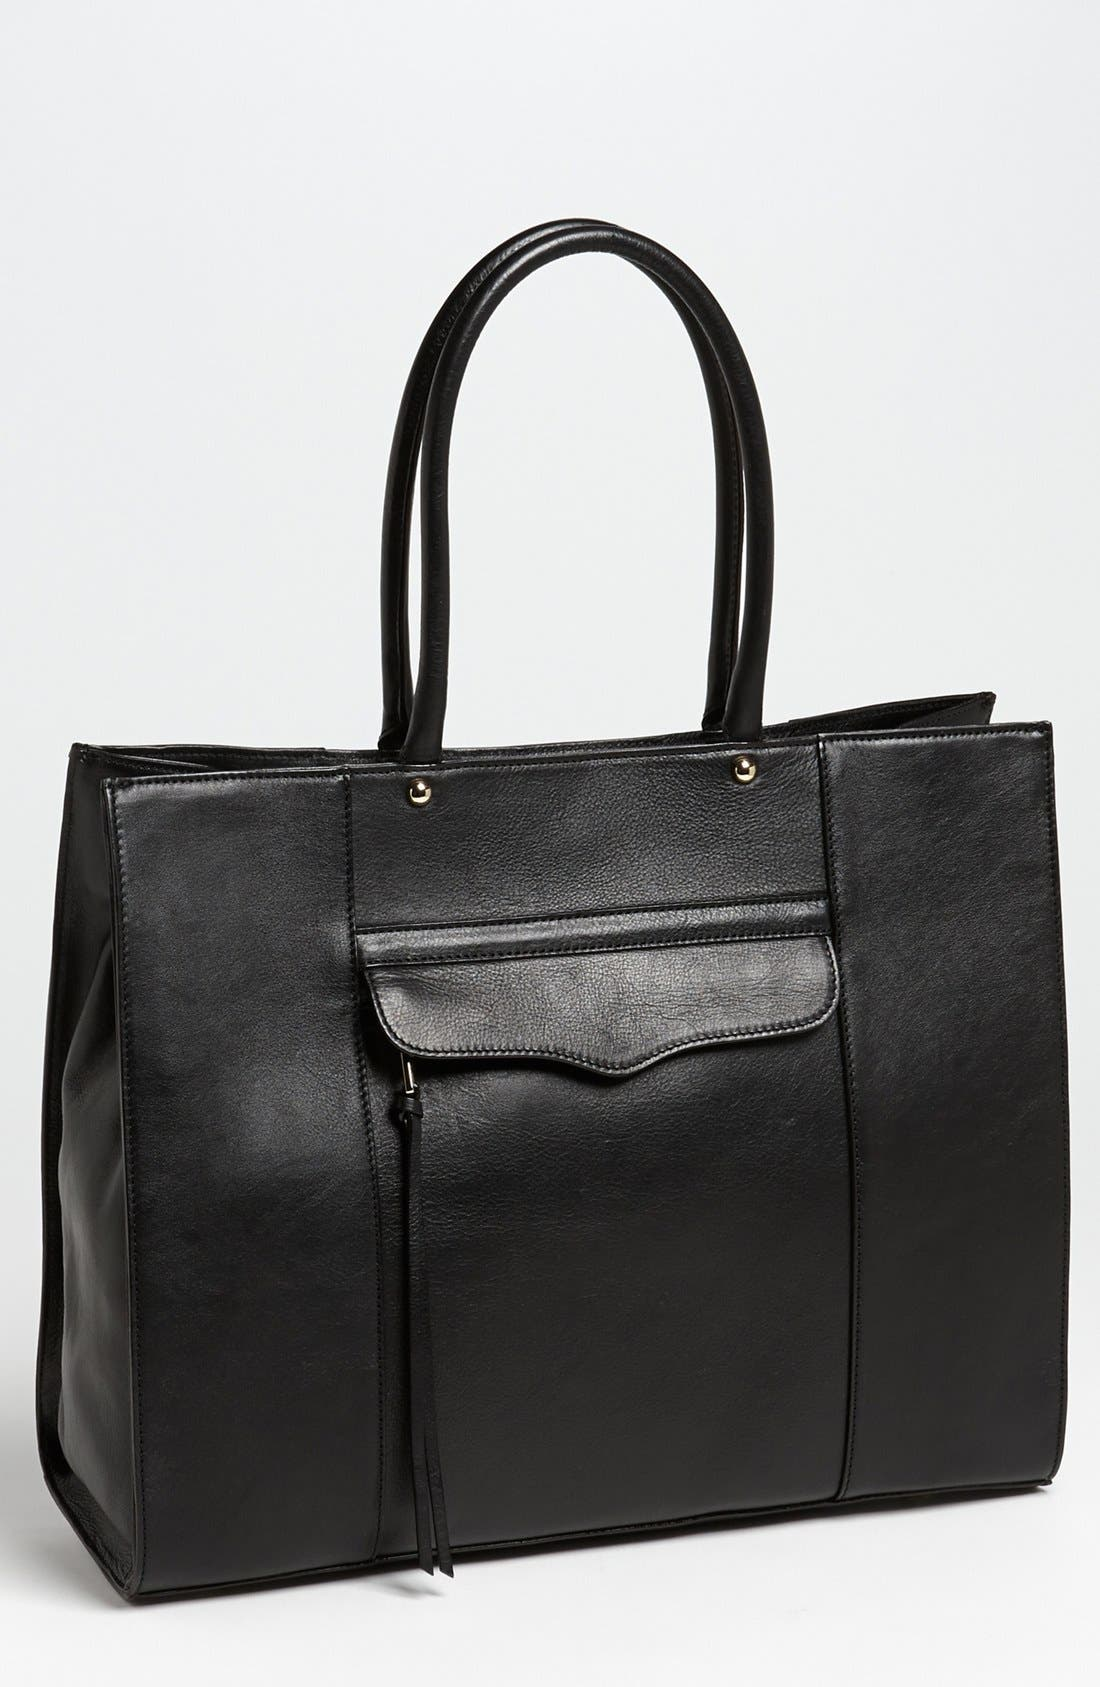 Alternate Image 1 Selected - Rebecca Minkoff 'Large MAB' Tote